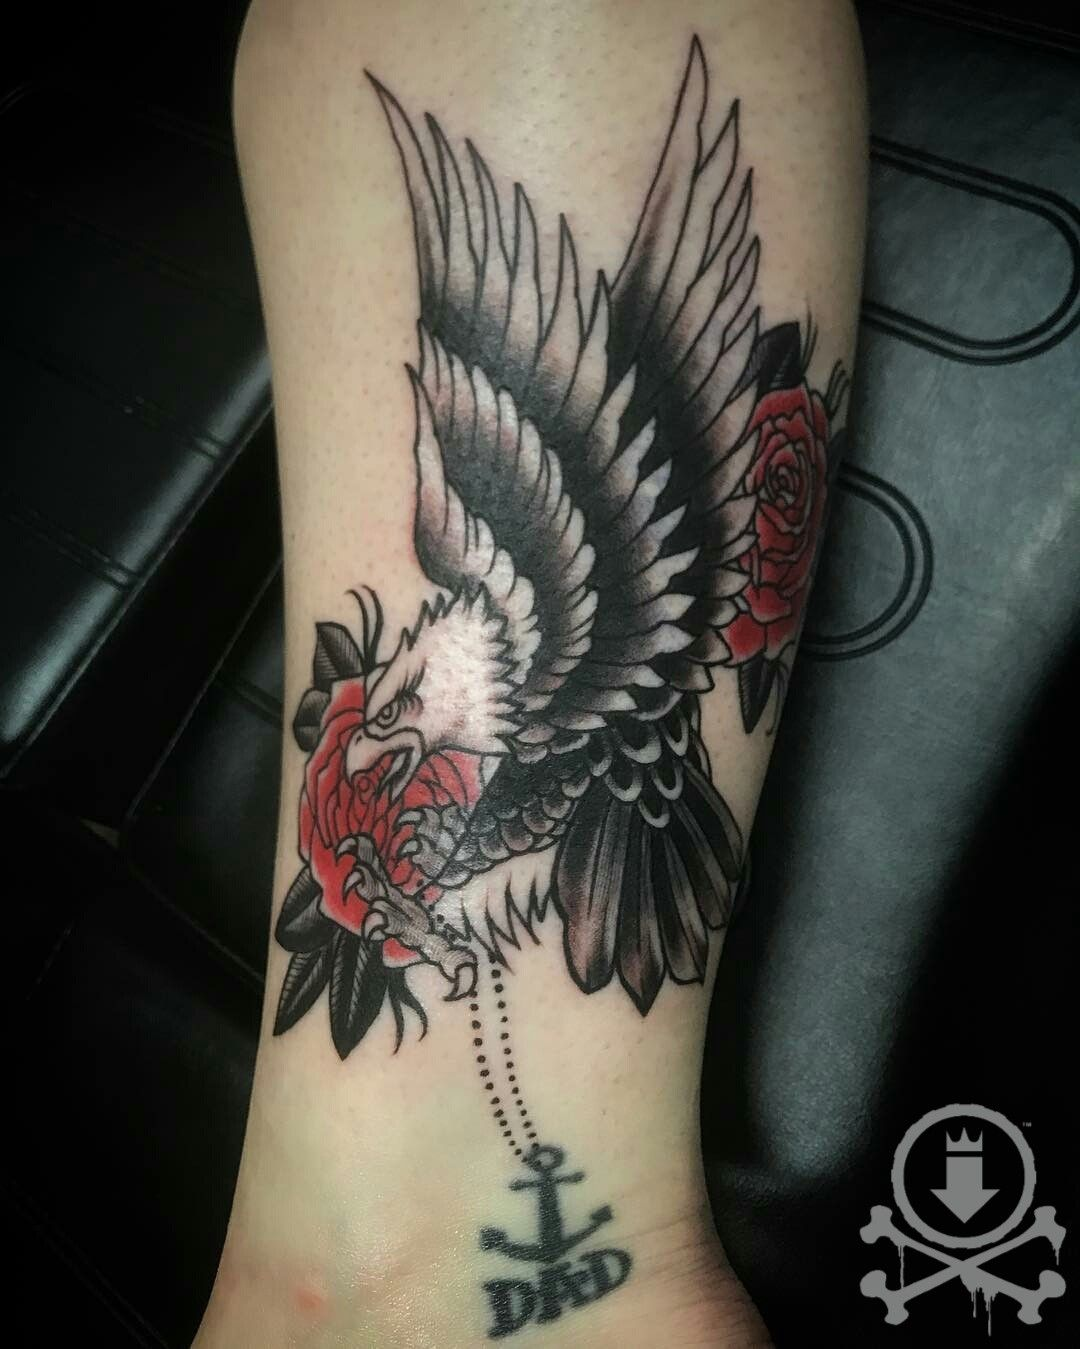 Awesome Traditional Style Eagle And Roses Tattoo By Jose Bolorin